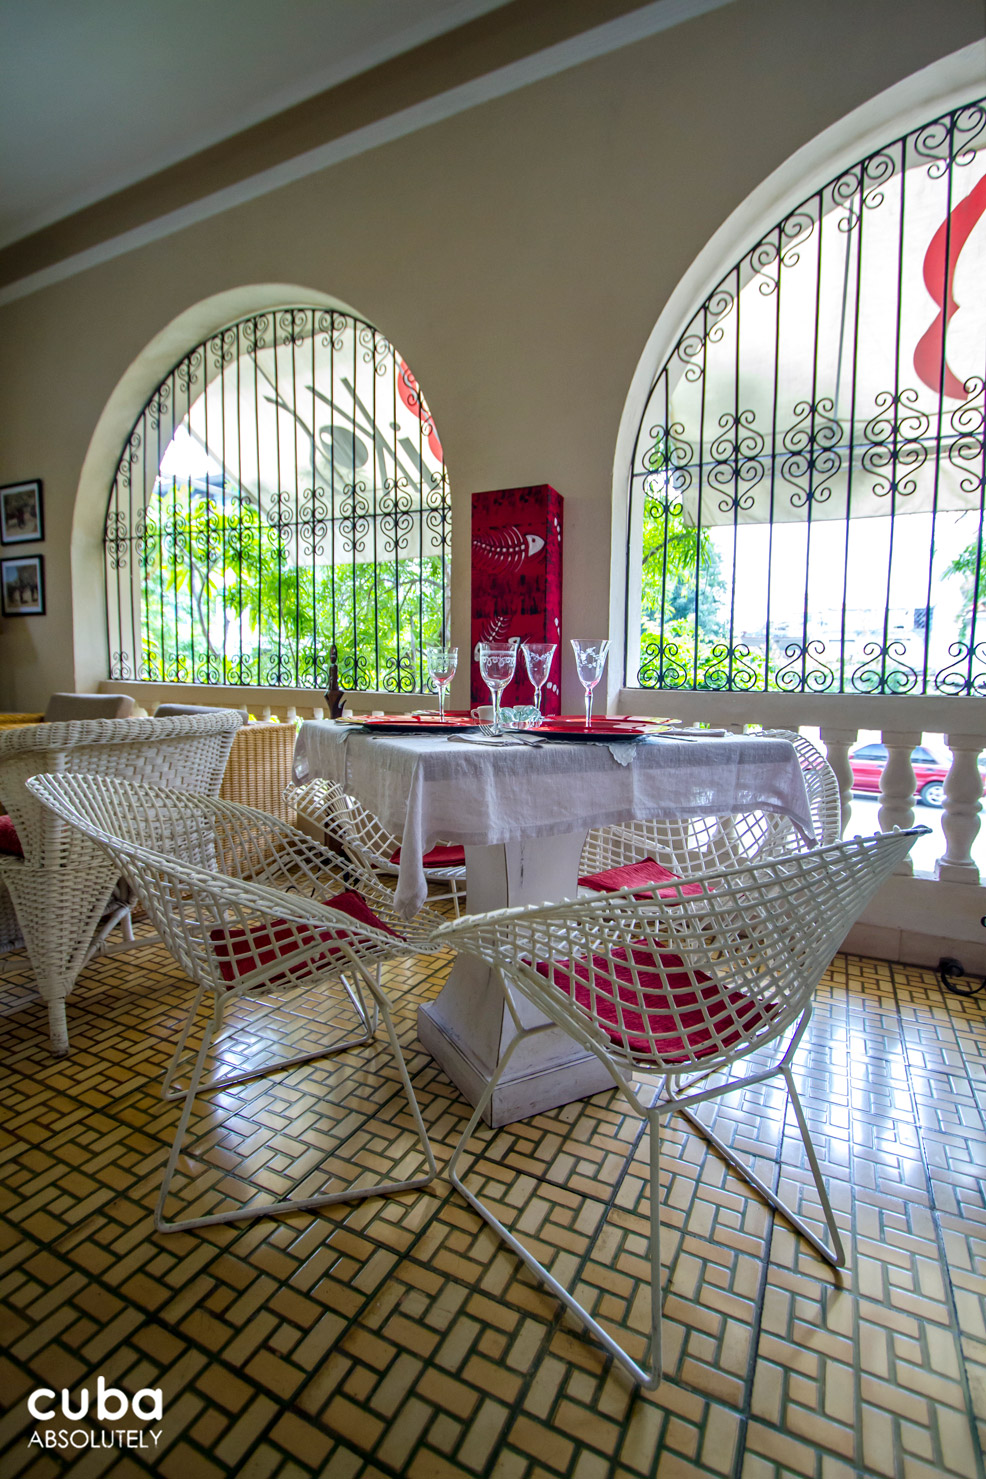 This bar was opened in June 2013 and promises to be a great addition to the paladar and bar scene in Havana. The décor is interesting and carries an African theme accentuated with custom made chairs that resemble the original Coppelia chairs. Havana, Cuba